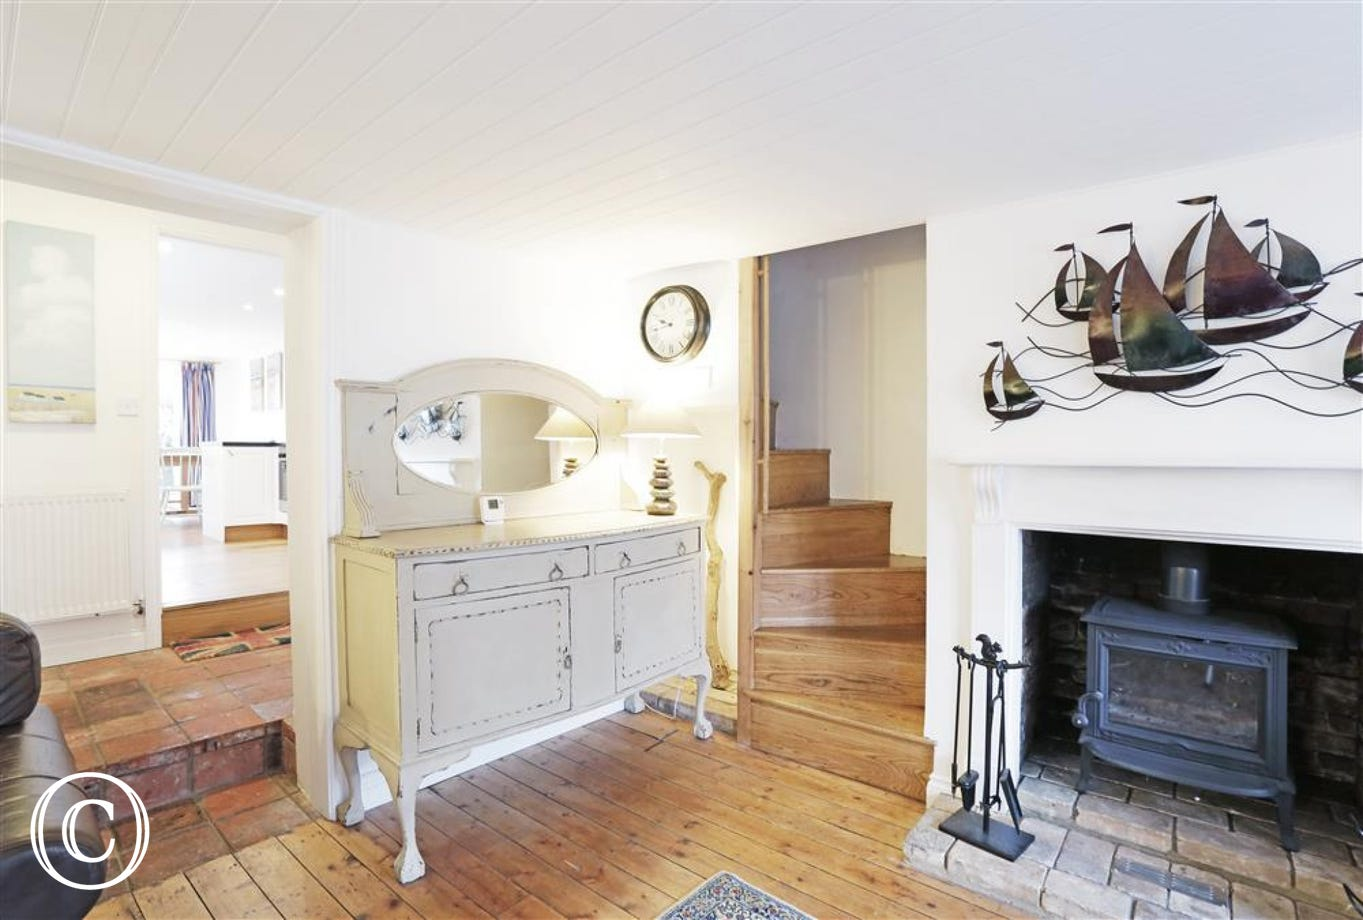 Enjoy this gorgeous wood burner which is centrally located at the end of the sitting room to emit warmth and comfort.